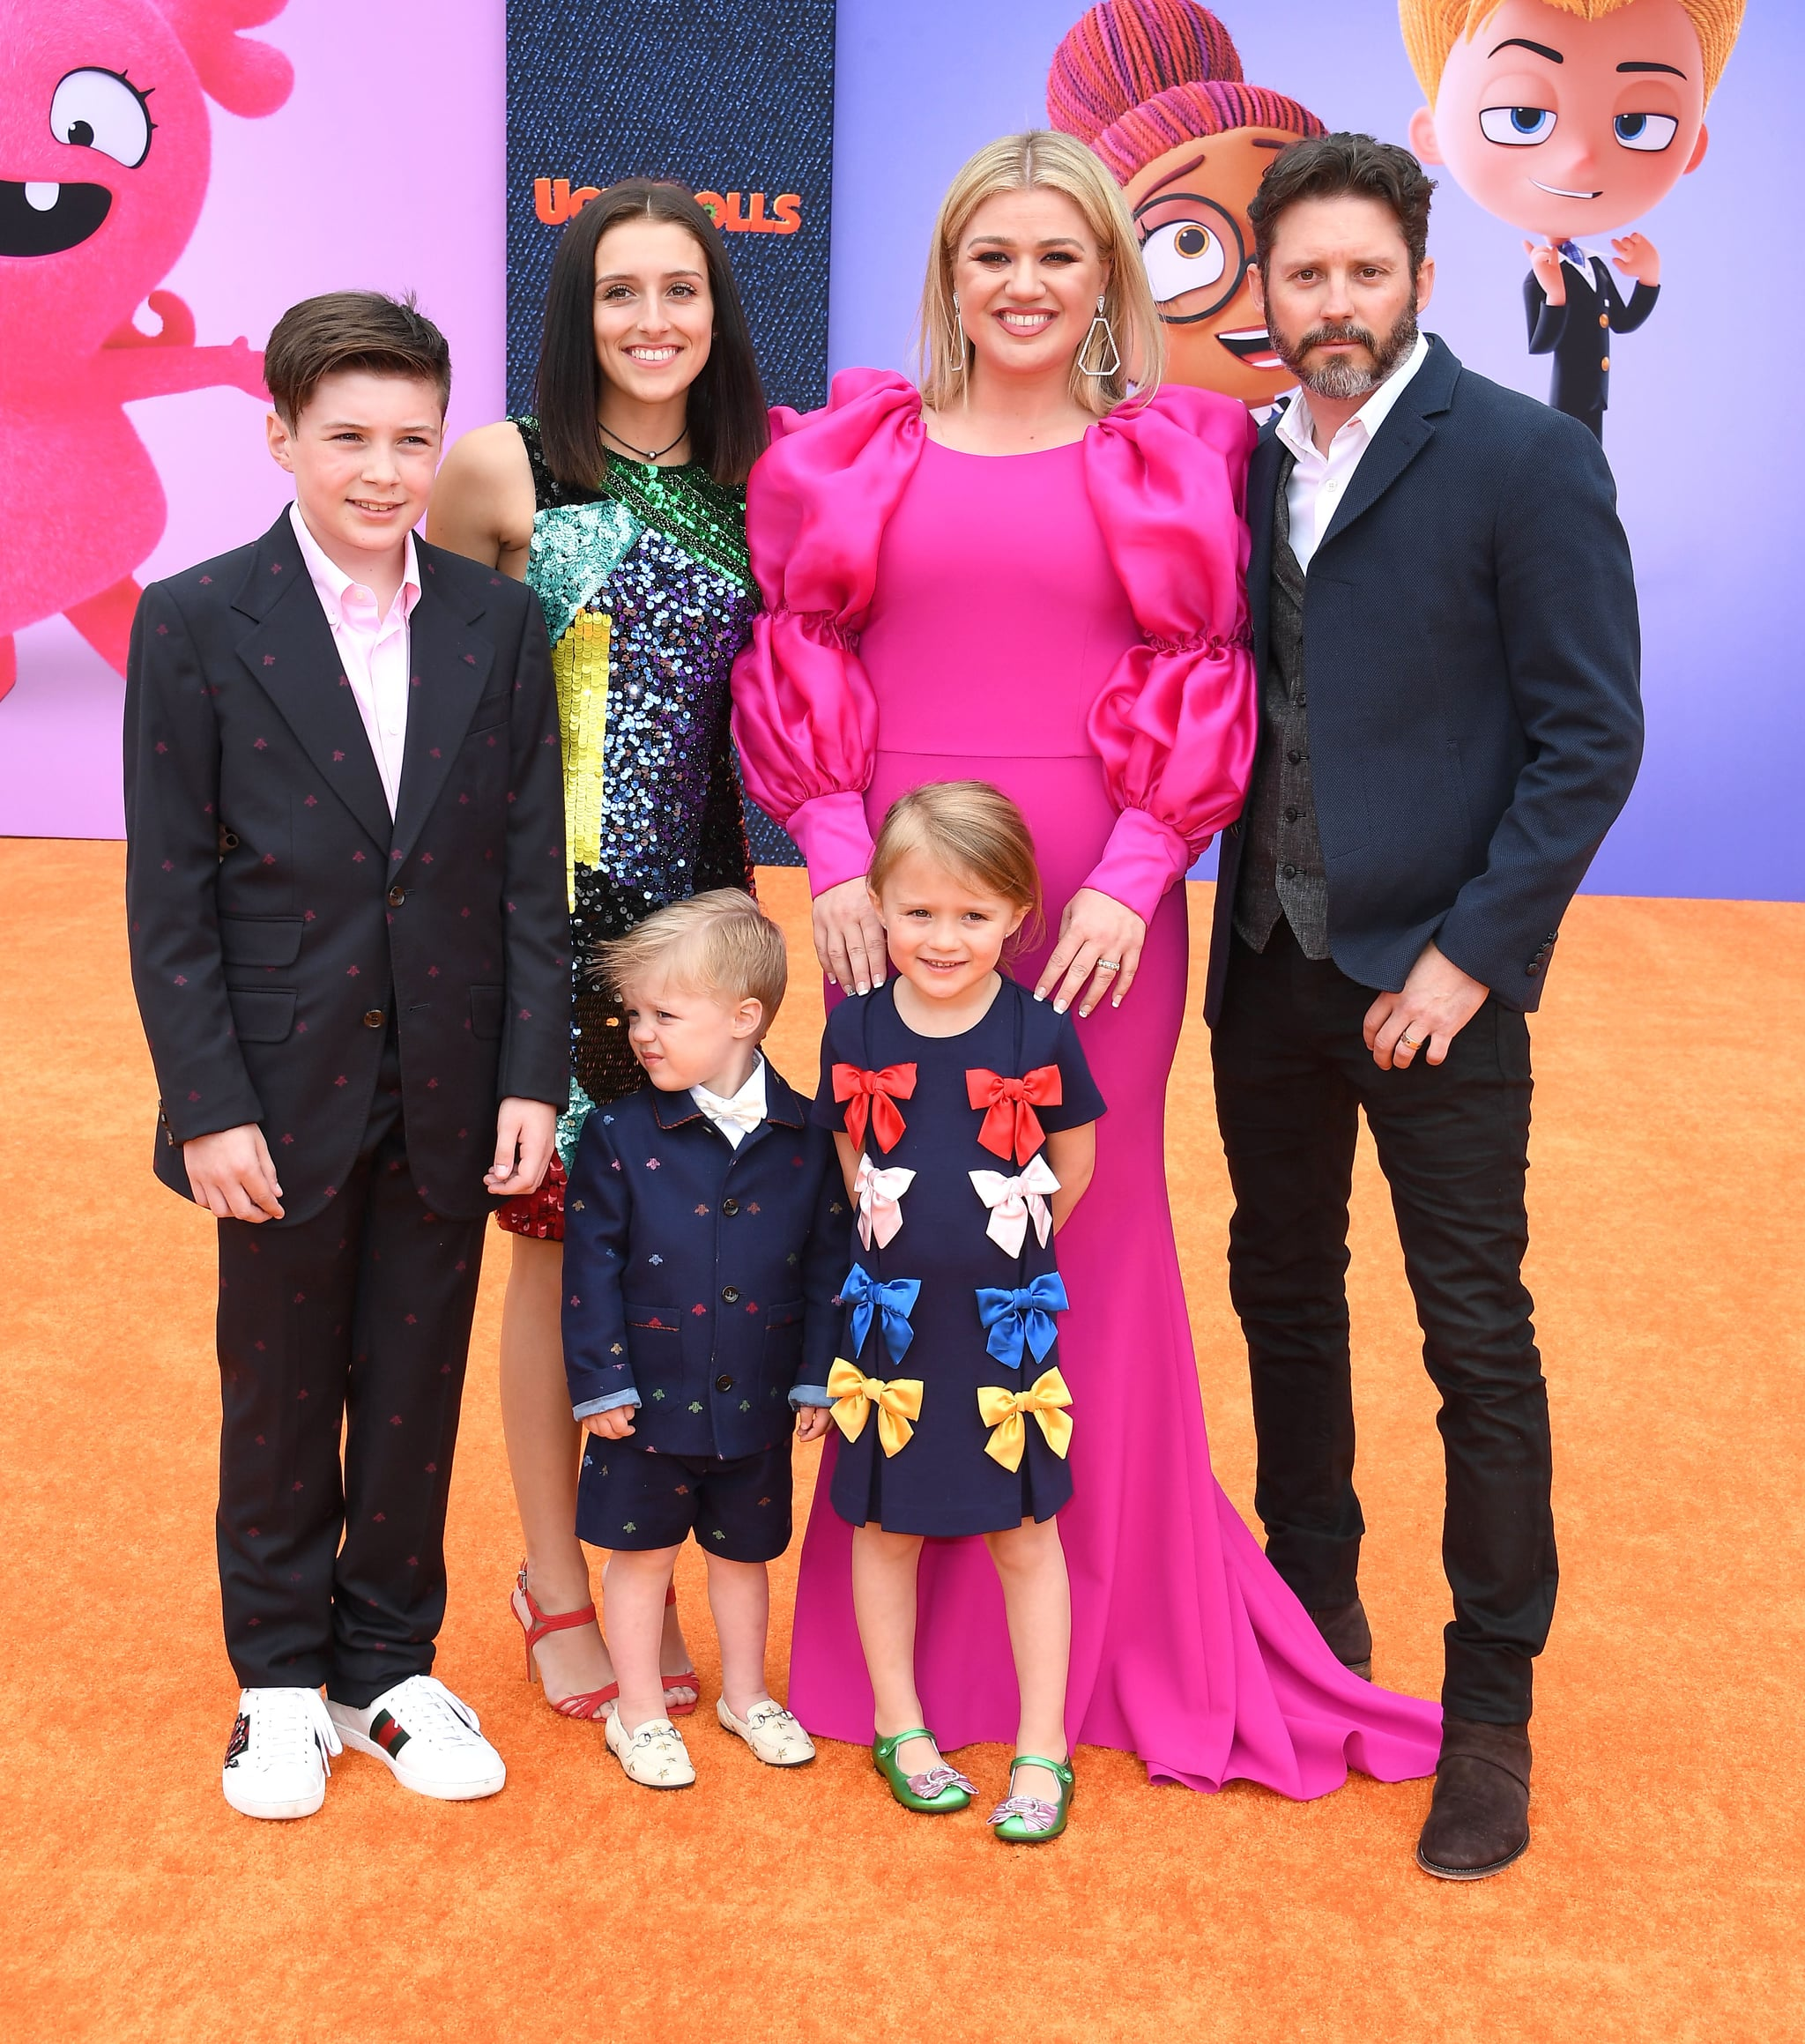 LOS ANGELES, CALIFORNIA - APRIL 27: Seth Blackstock, Remington Alexander Blackstock, Savannah Blackstock, Kelly Clarkson, River Rose Blackstock, and Brandon Blackstock  arrives at the STX Films World Premiere Of